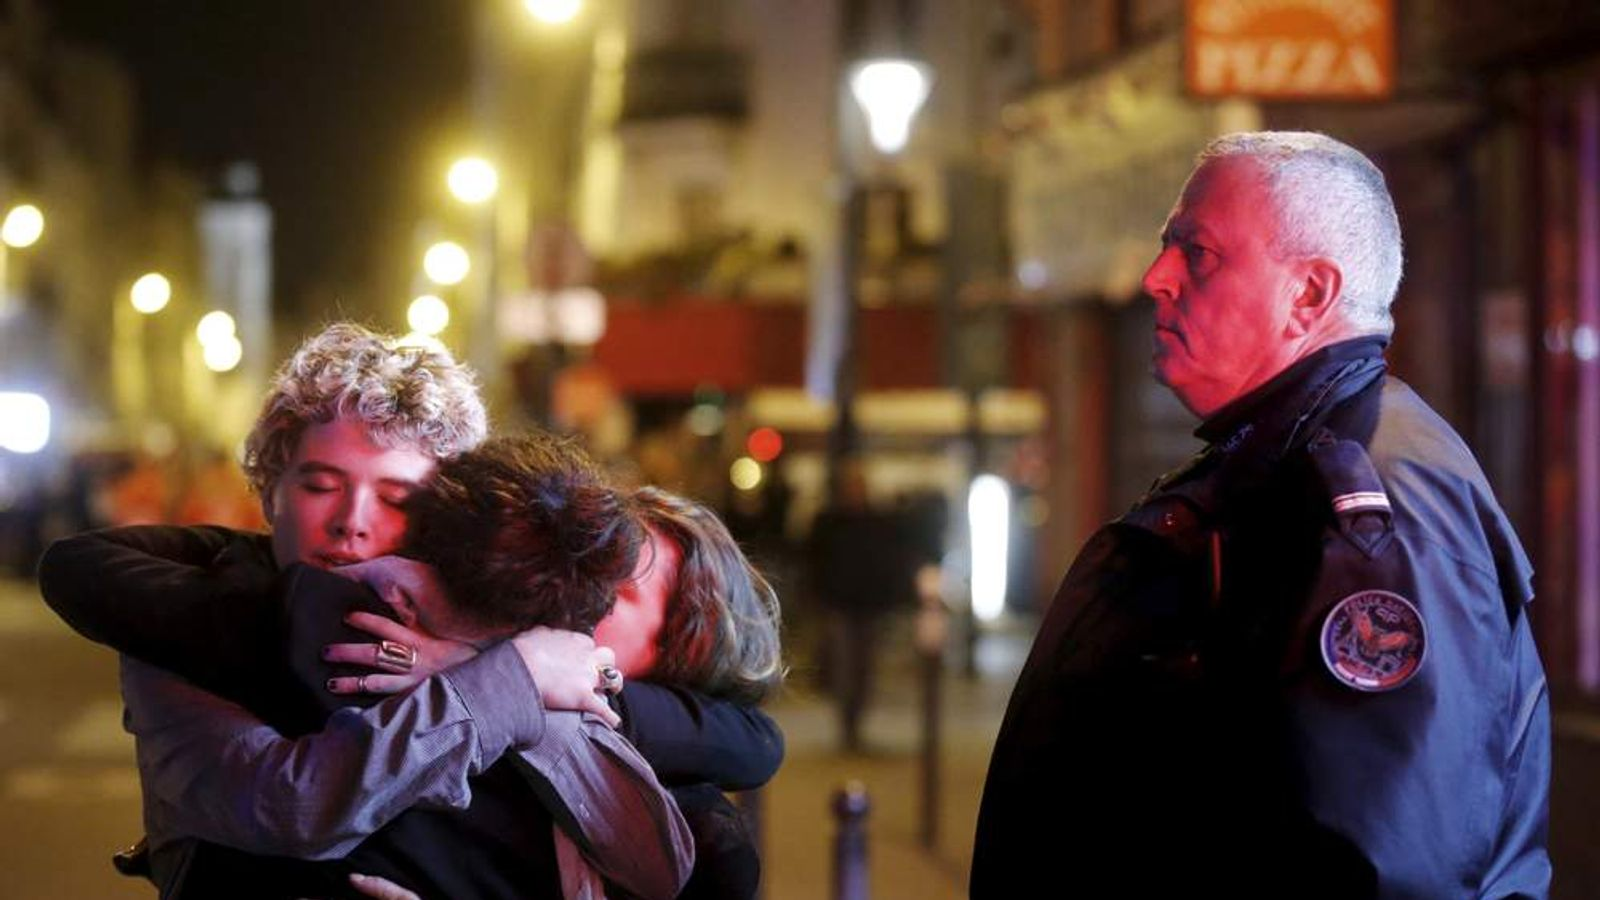 People hug on the street near the Bataclan concert hall following fatal attacks in Paris, France